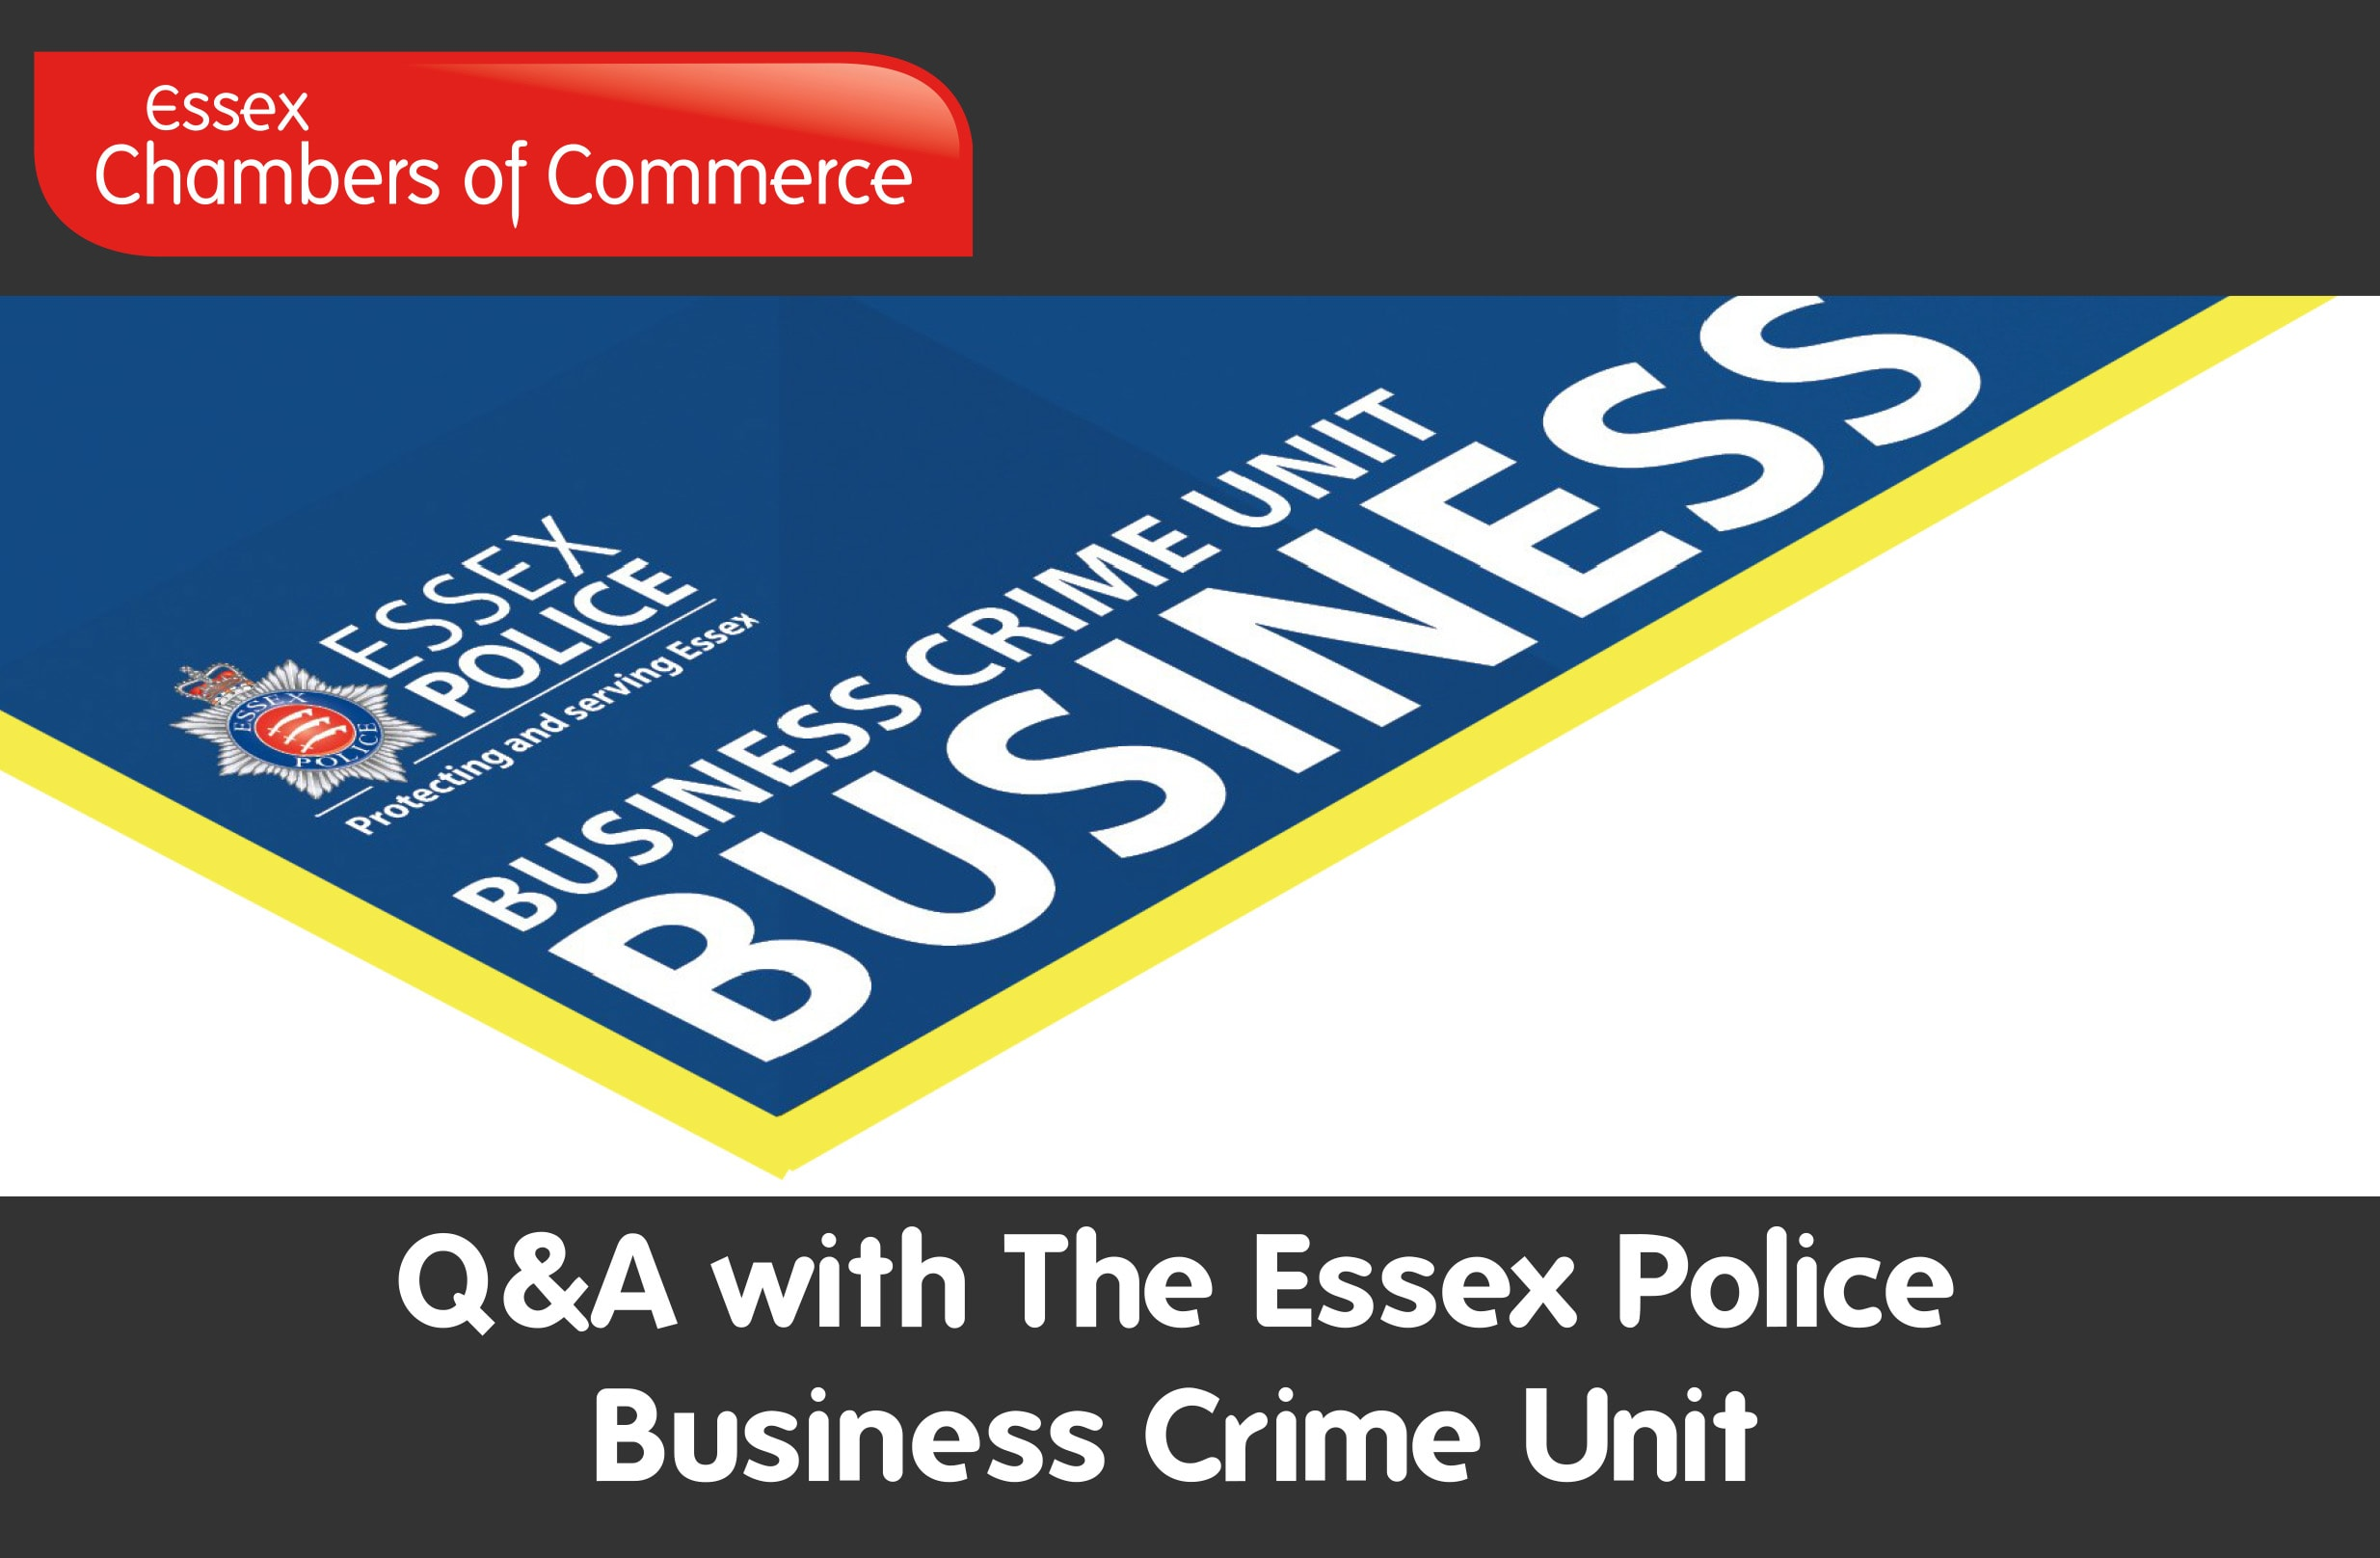 Essex Chambers of Commerce - Q&A with The Essex Police Business Crime Unit